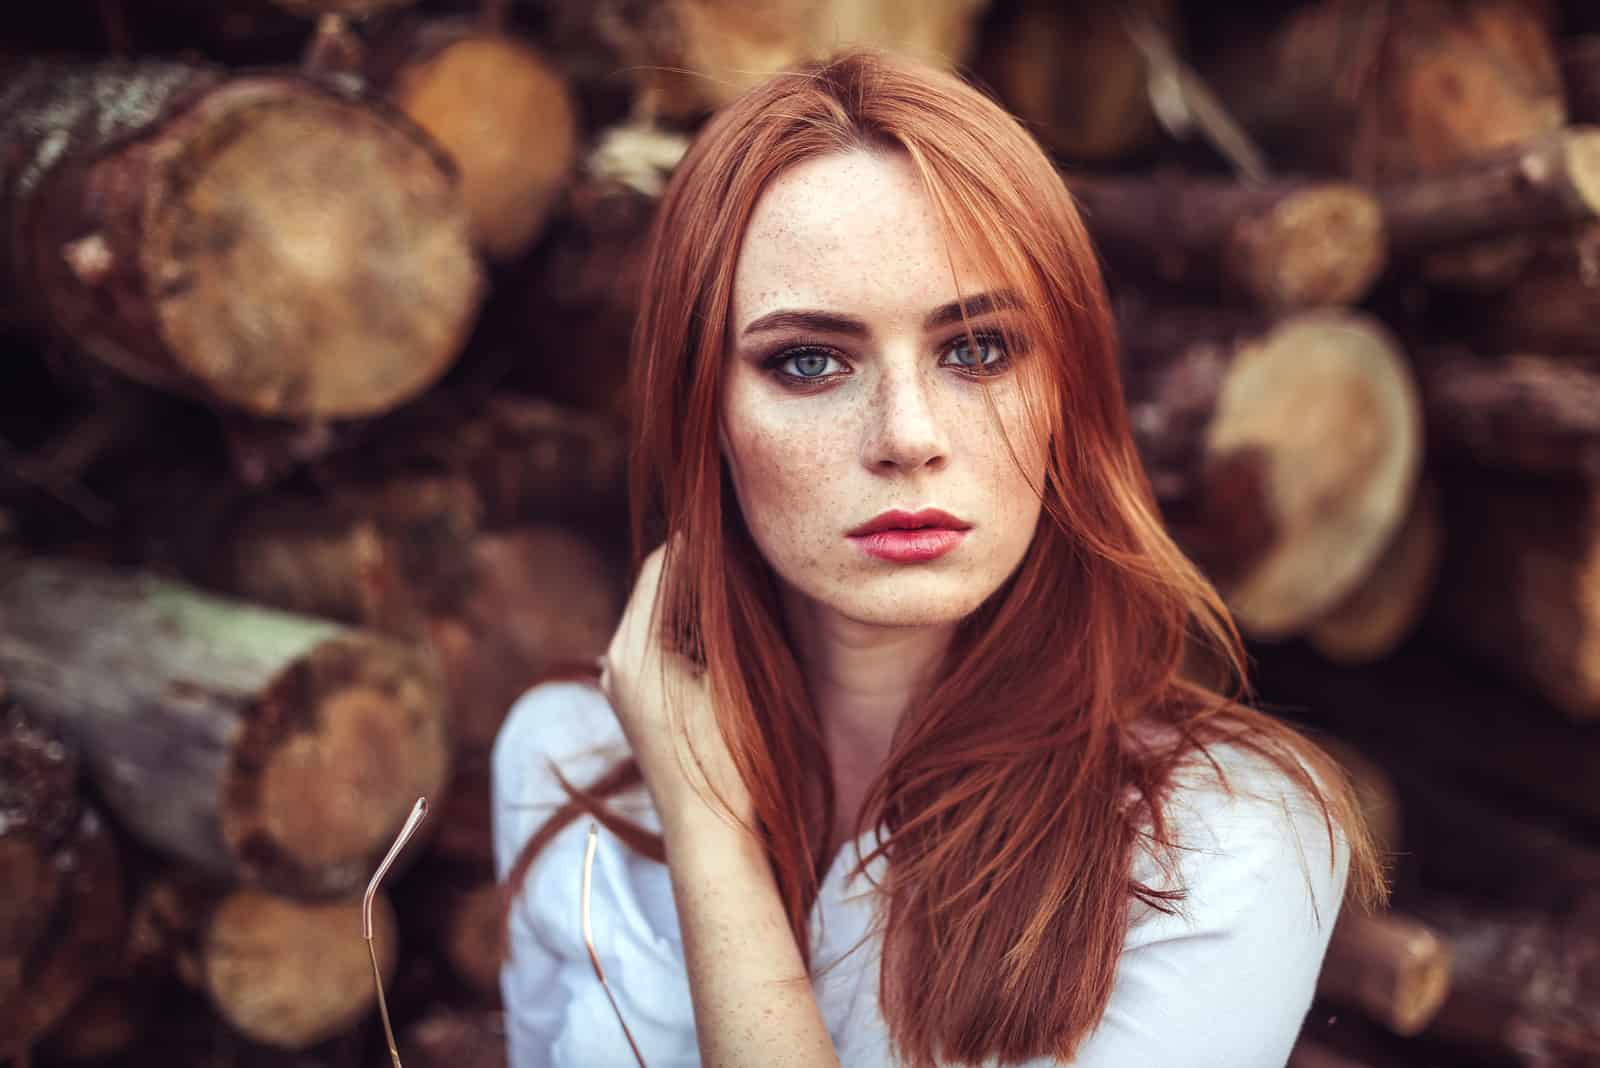 redhead young girl with healthy freckled skin wearing white top